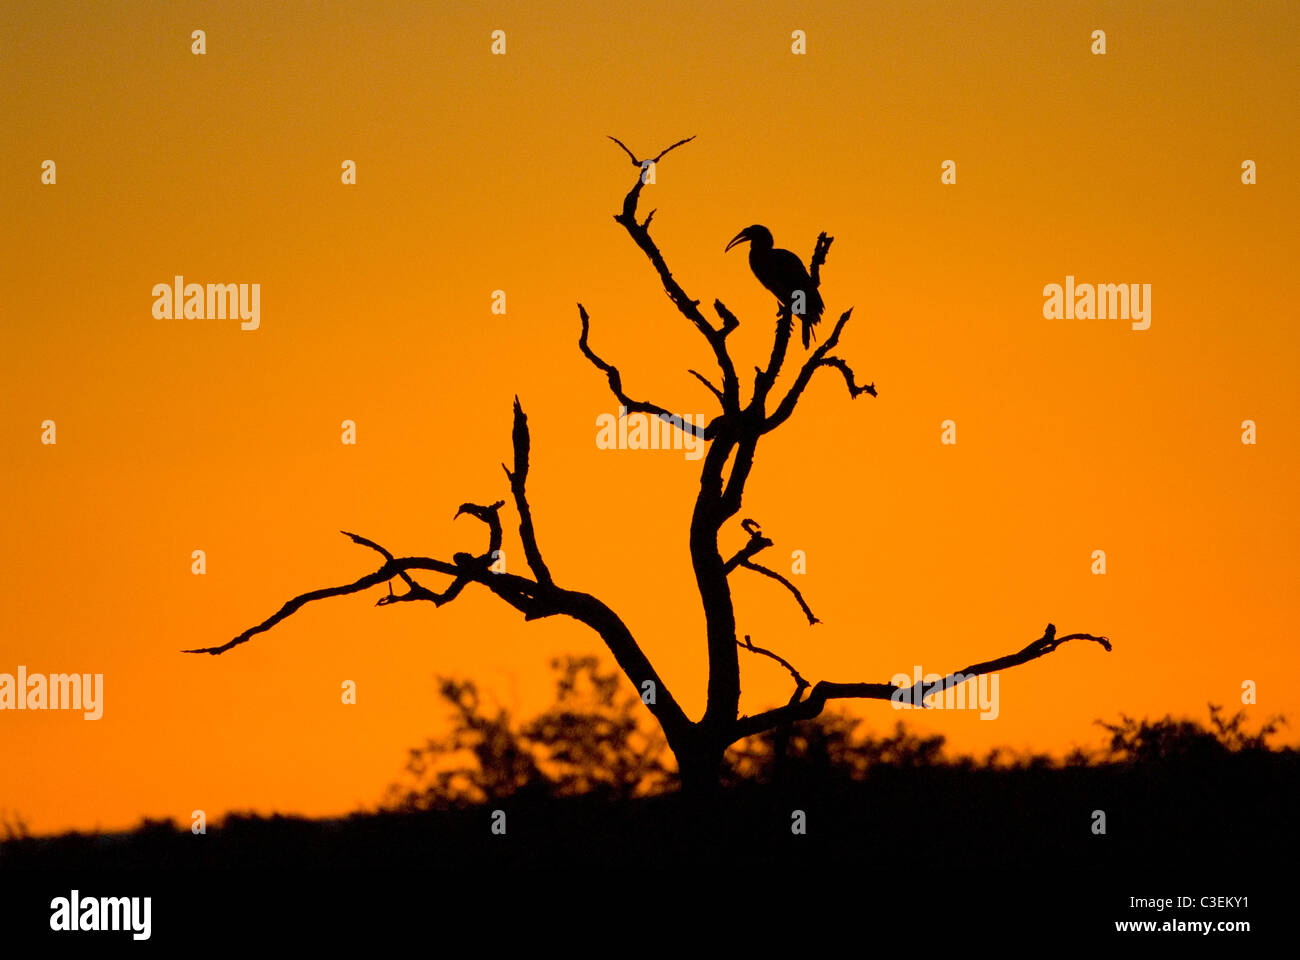 South African landscapes include desert, grassland, Bushveld and mountains. Ground hornbill silhouette in tree. - Stock Image